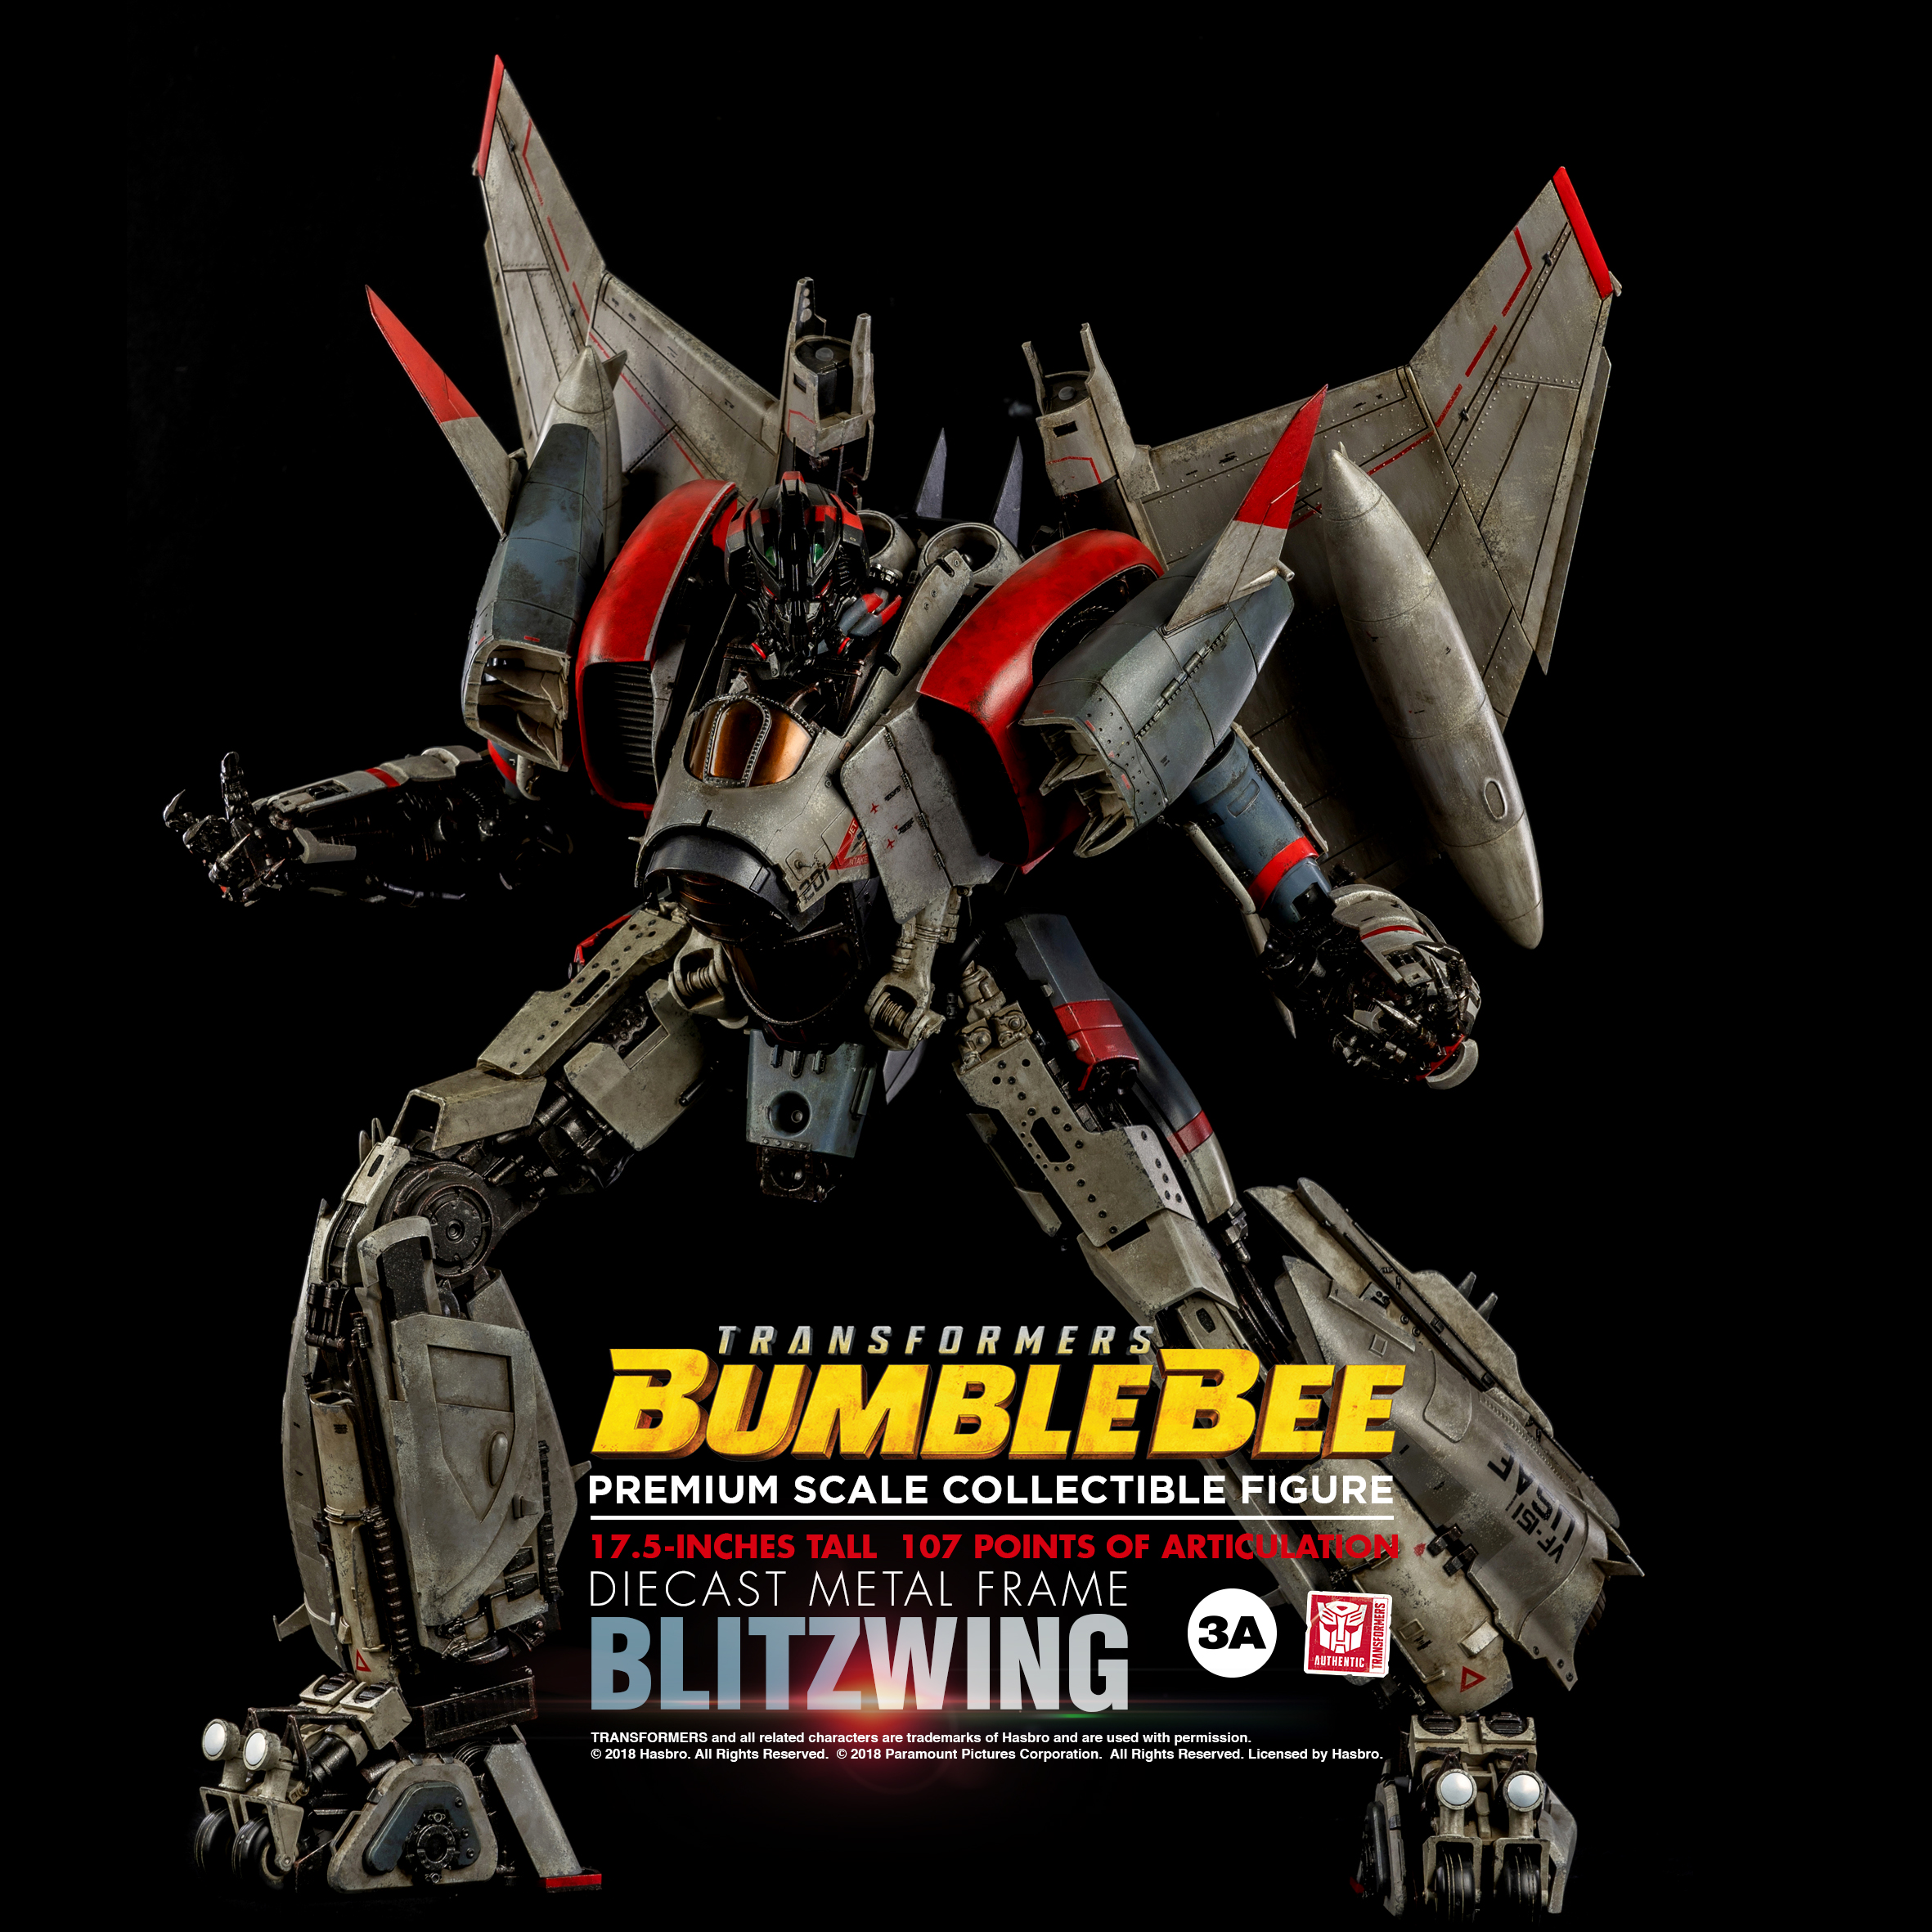 Blitzwing_PM_1071.jpg